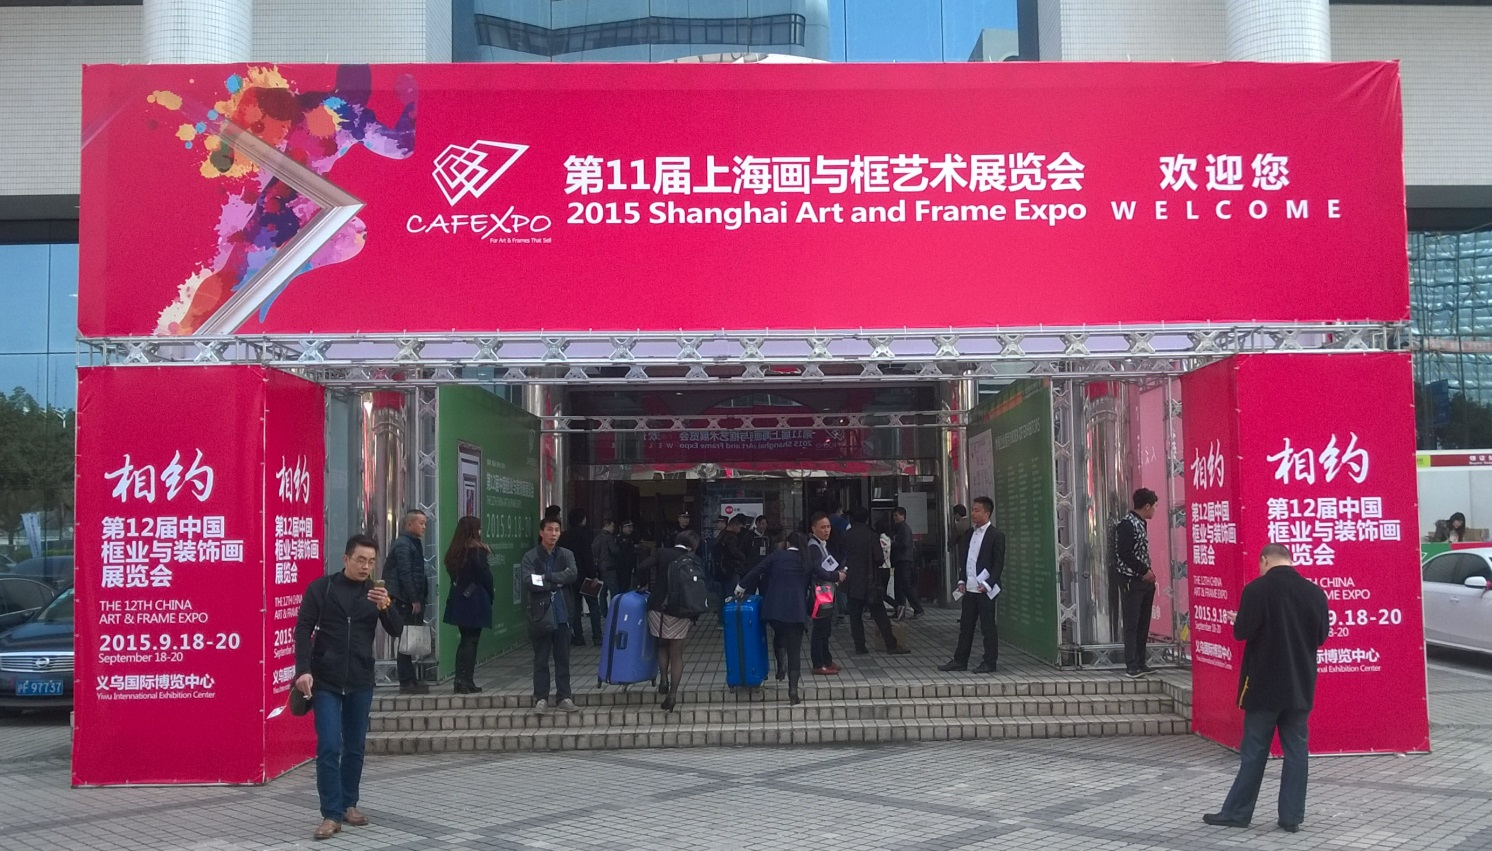 Groglass participates in shanghai art and frame expo 2015 groglass for many it was an innovative solution to be used in picture framing and we were proud to raise awareness of the anti reflective glass among the industry jeuxipadfo Choice Image